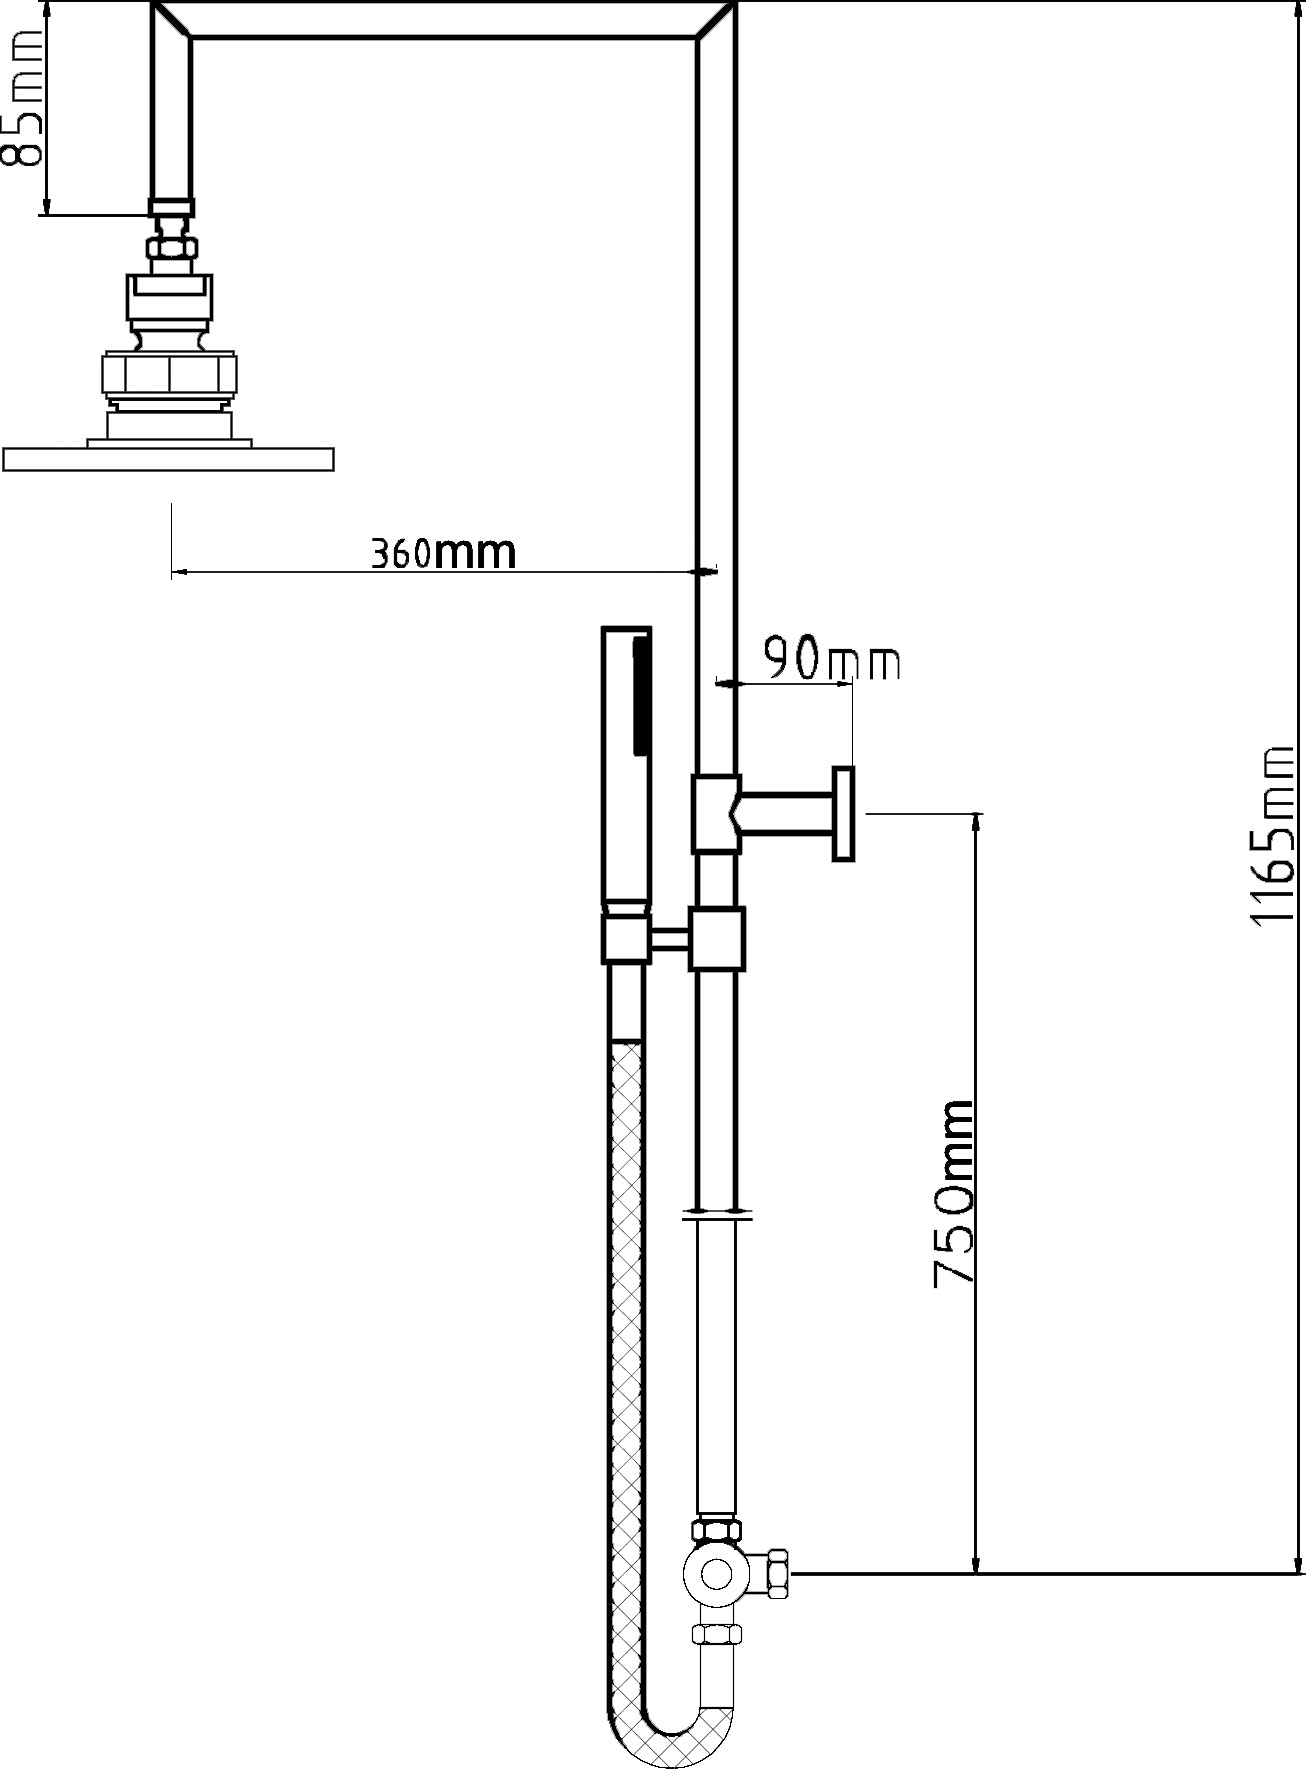 Technical Valve Shower Faucet Diagram Free Download Wiring Schematic